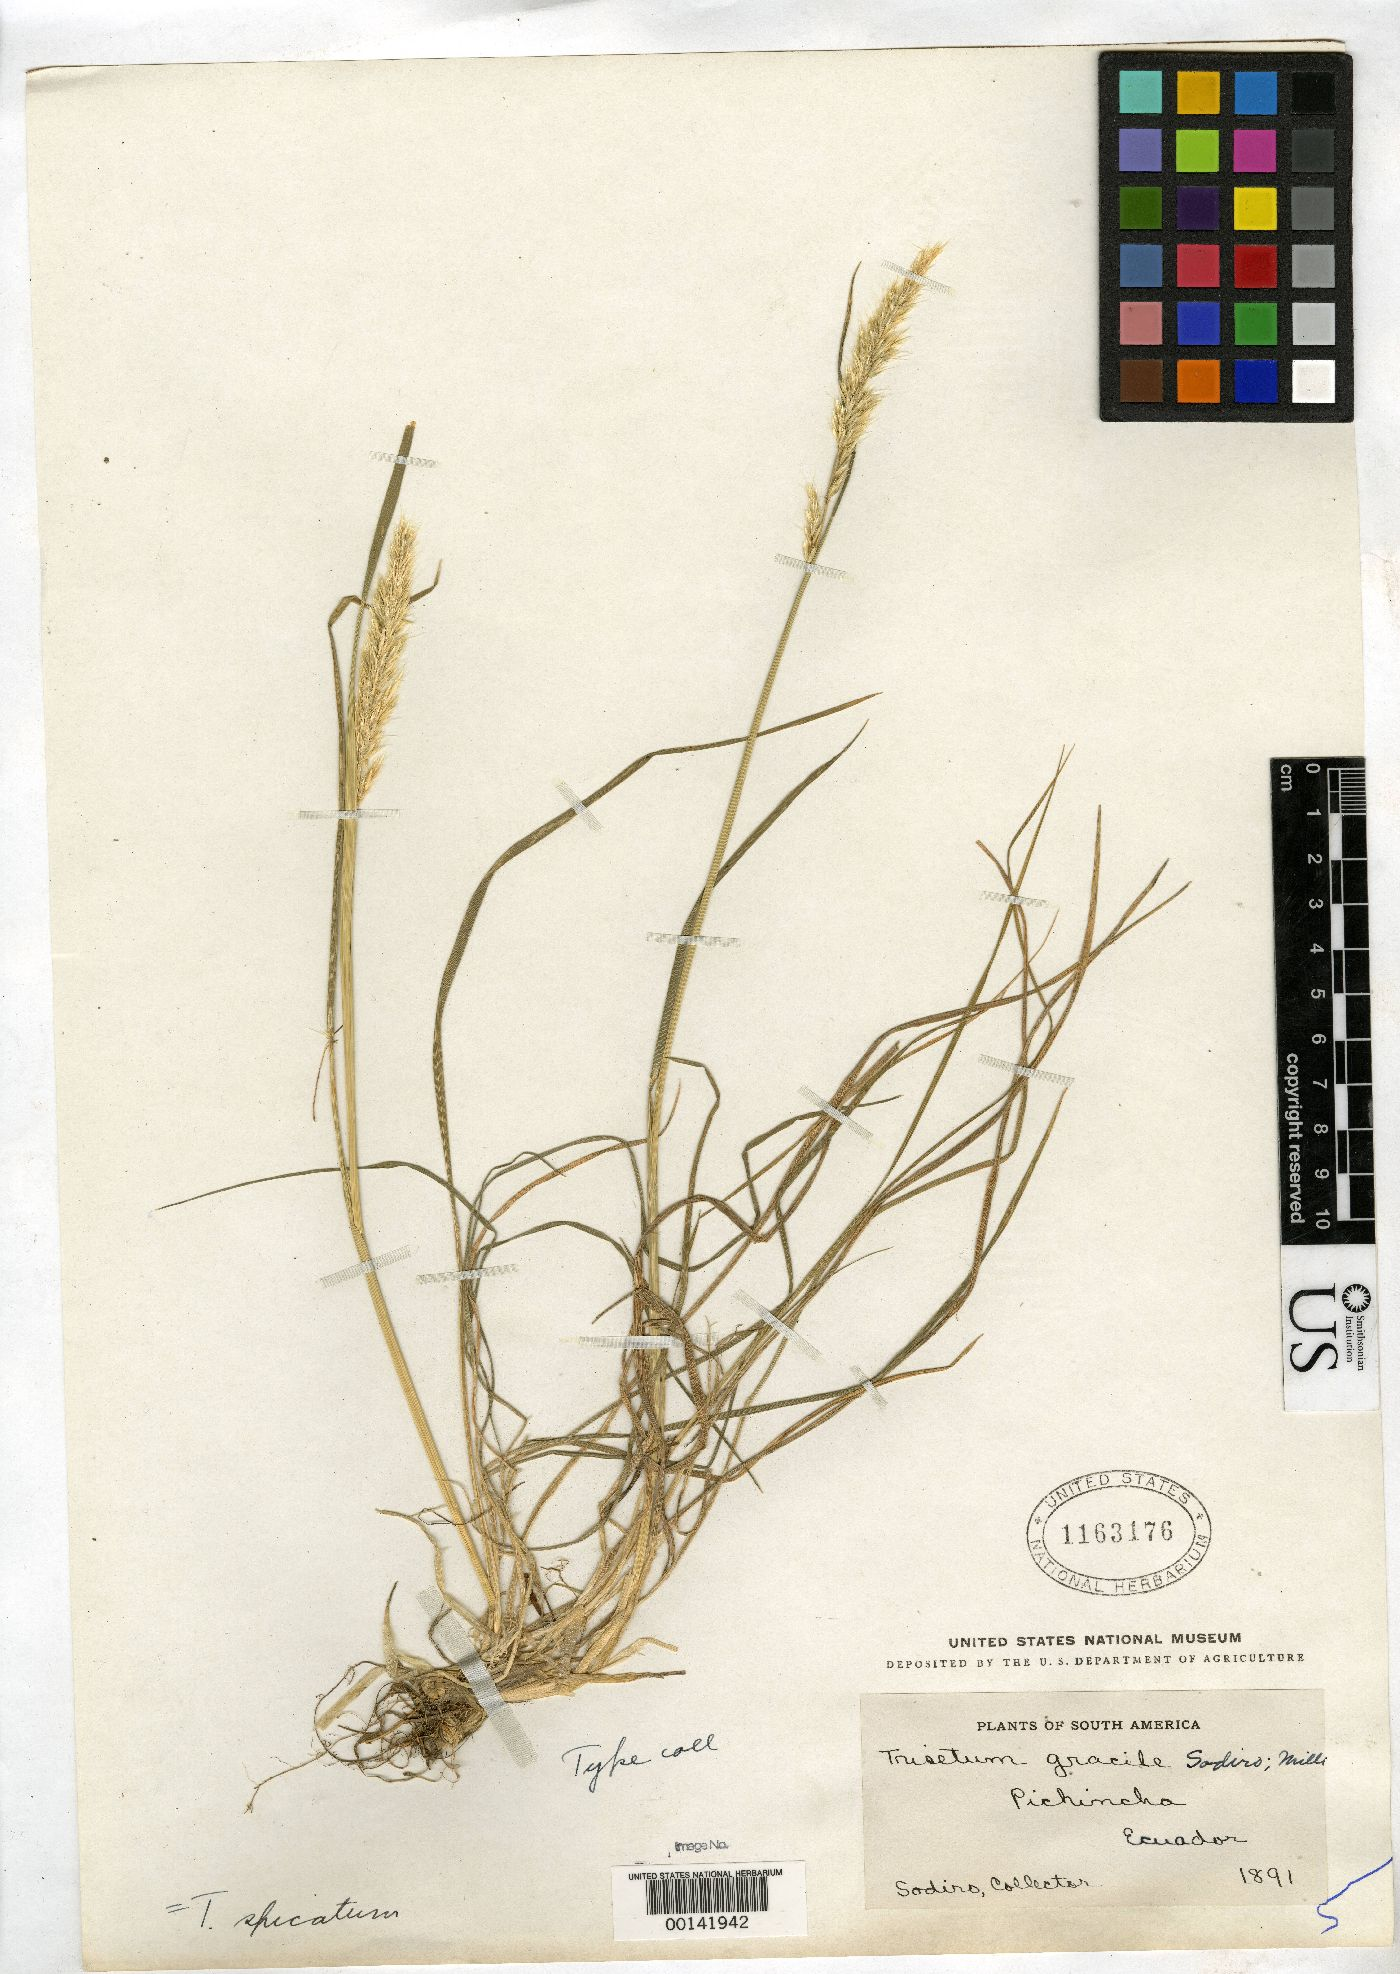 © United States National Herbarium – Source: https://herbariovaa.org/collections/individual/index.php?occid=2708783<br>